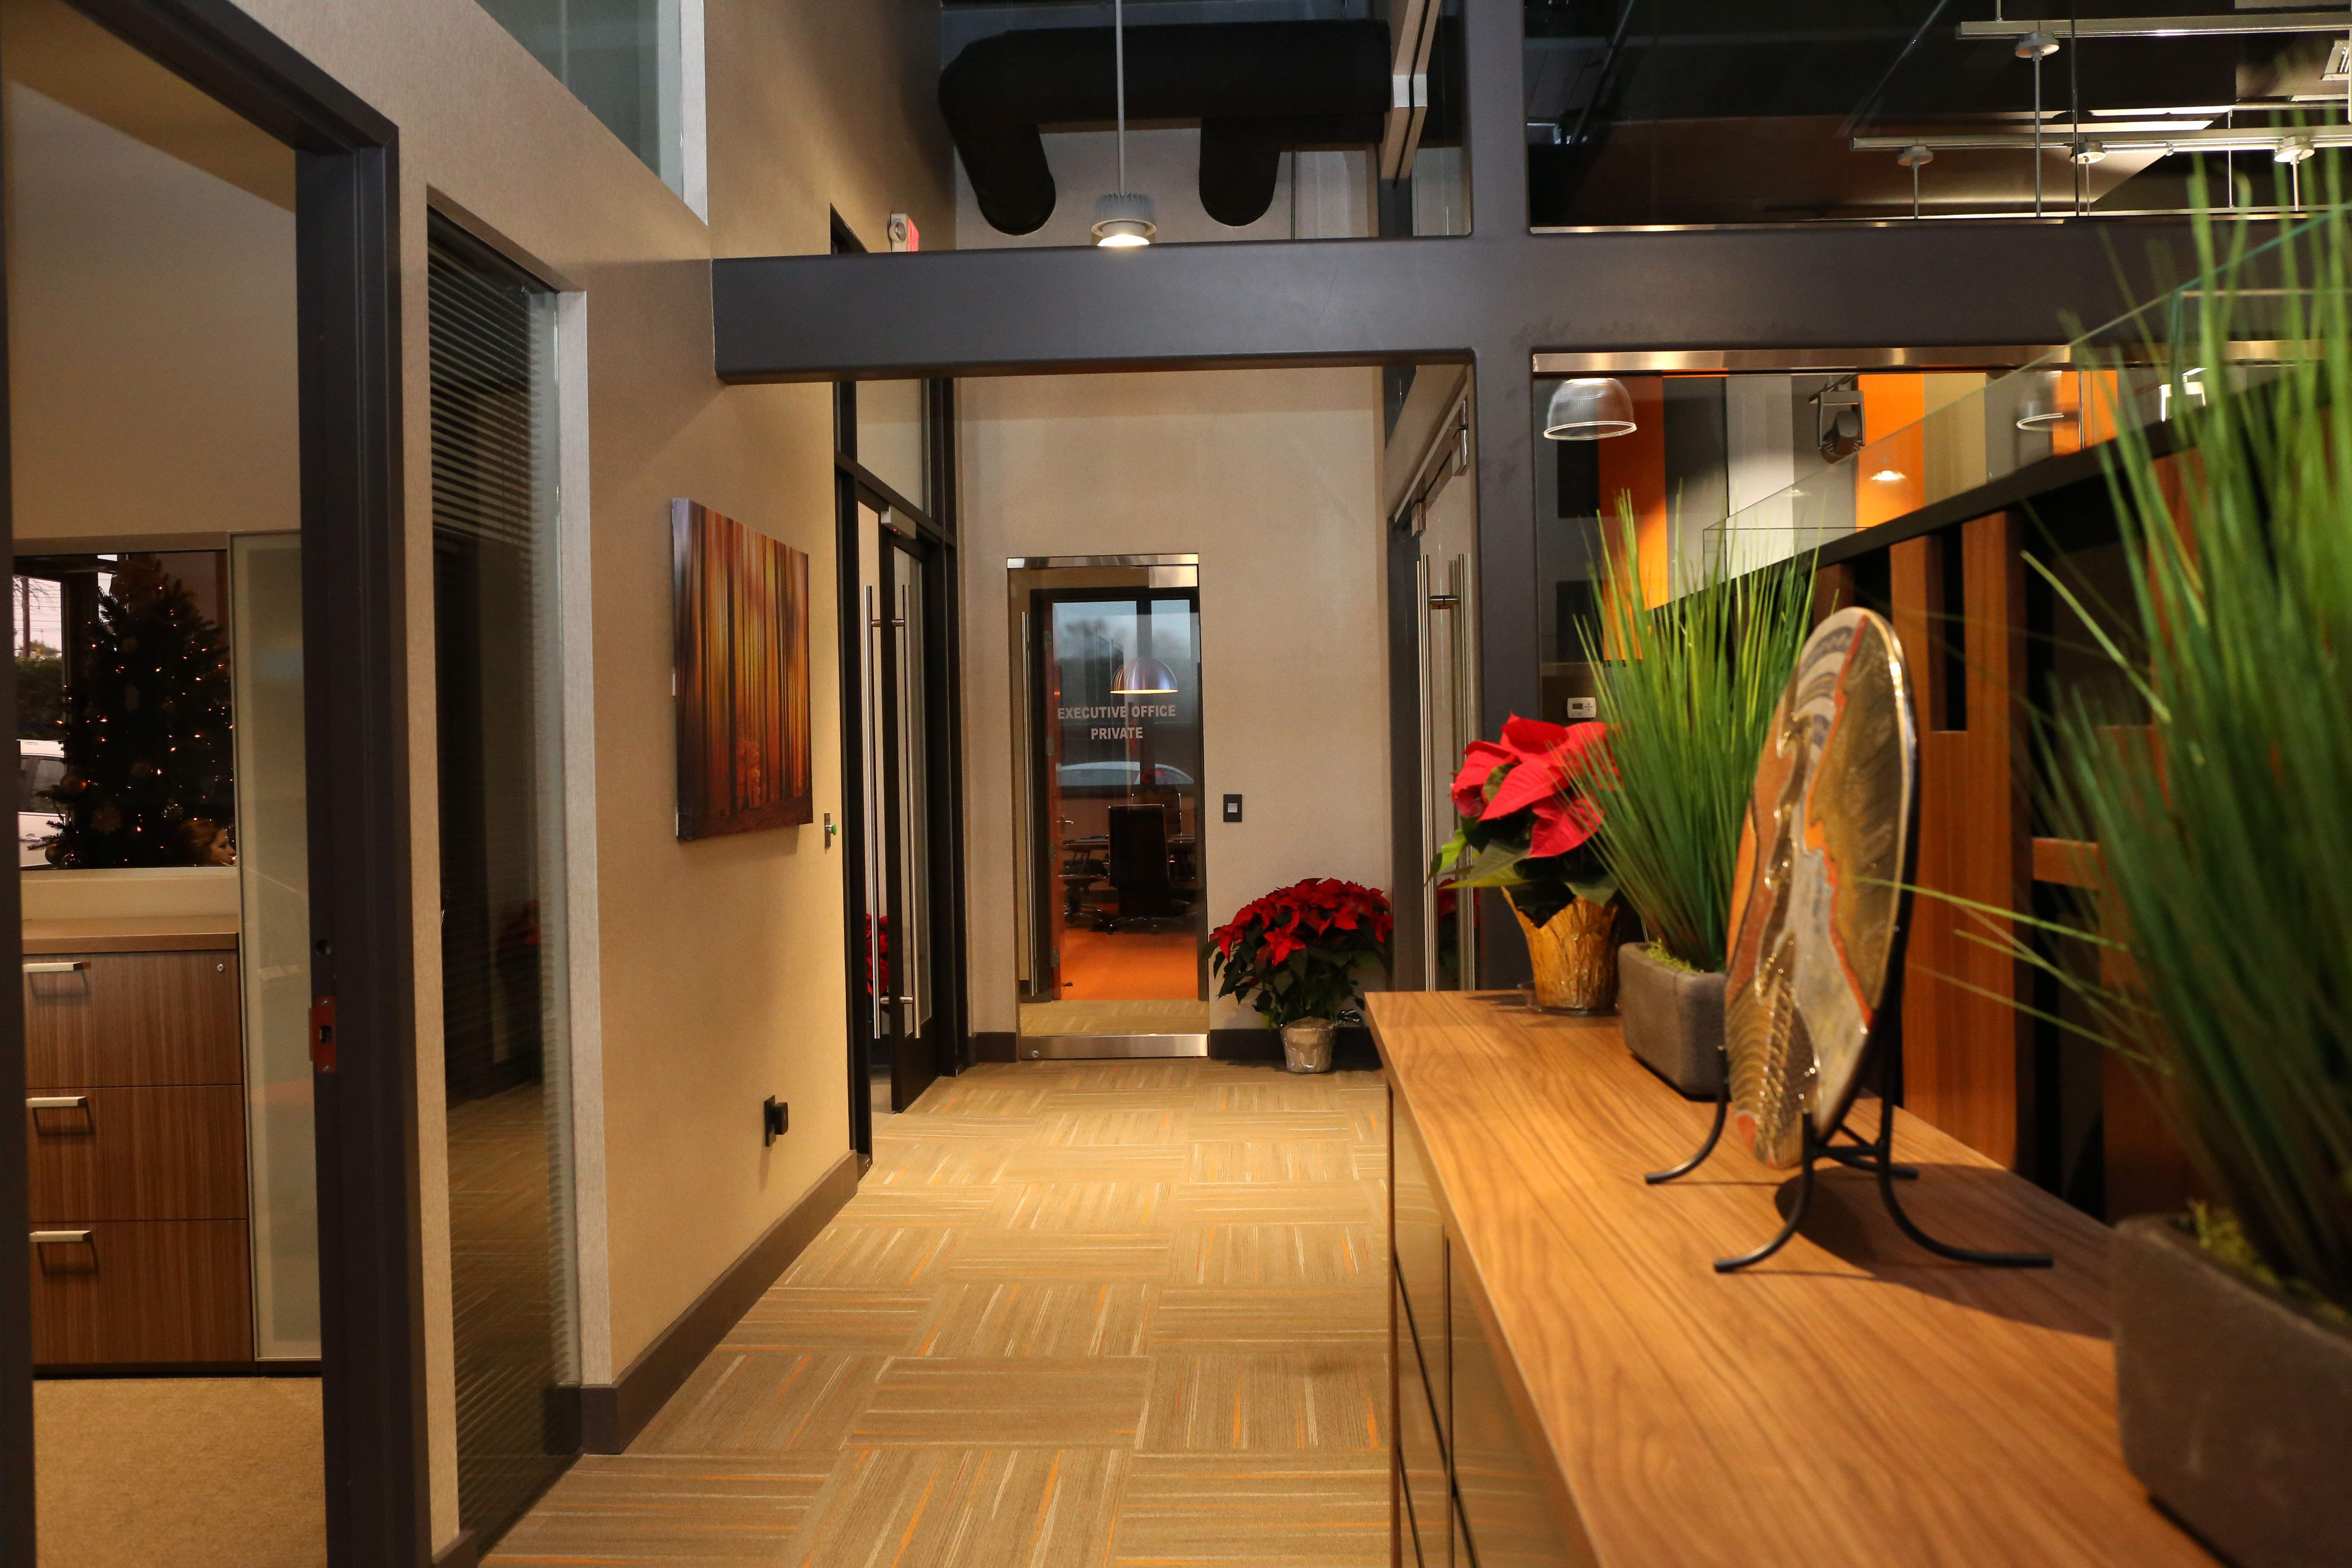 Health care company Immediate Care gave its workers a level of input over the design of its new corporate office in Red Bank.